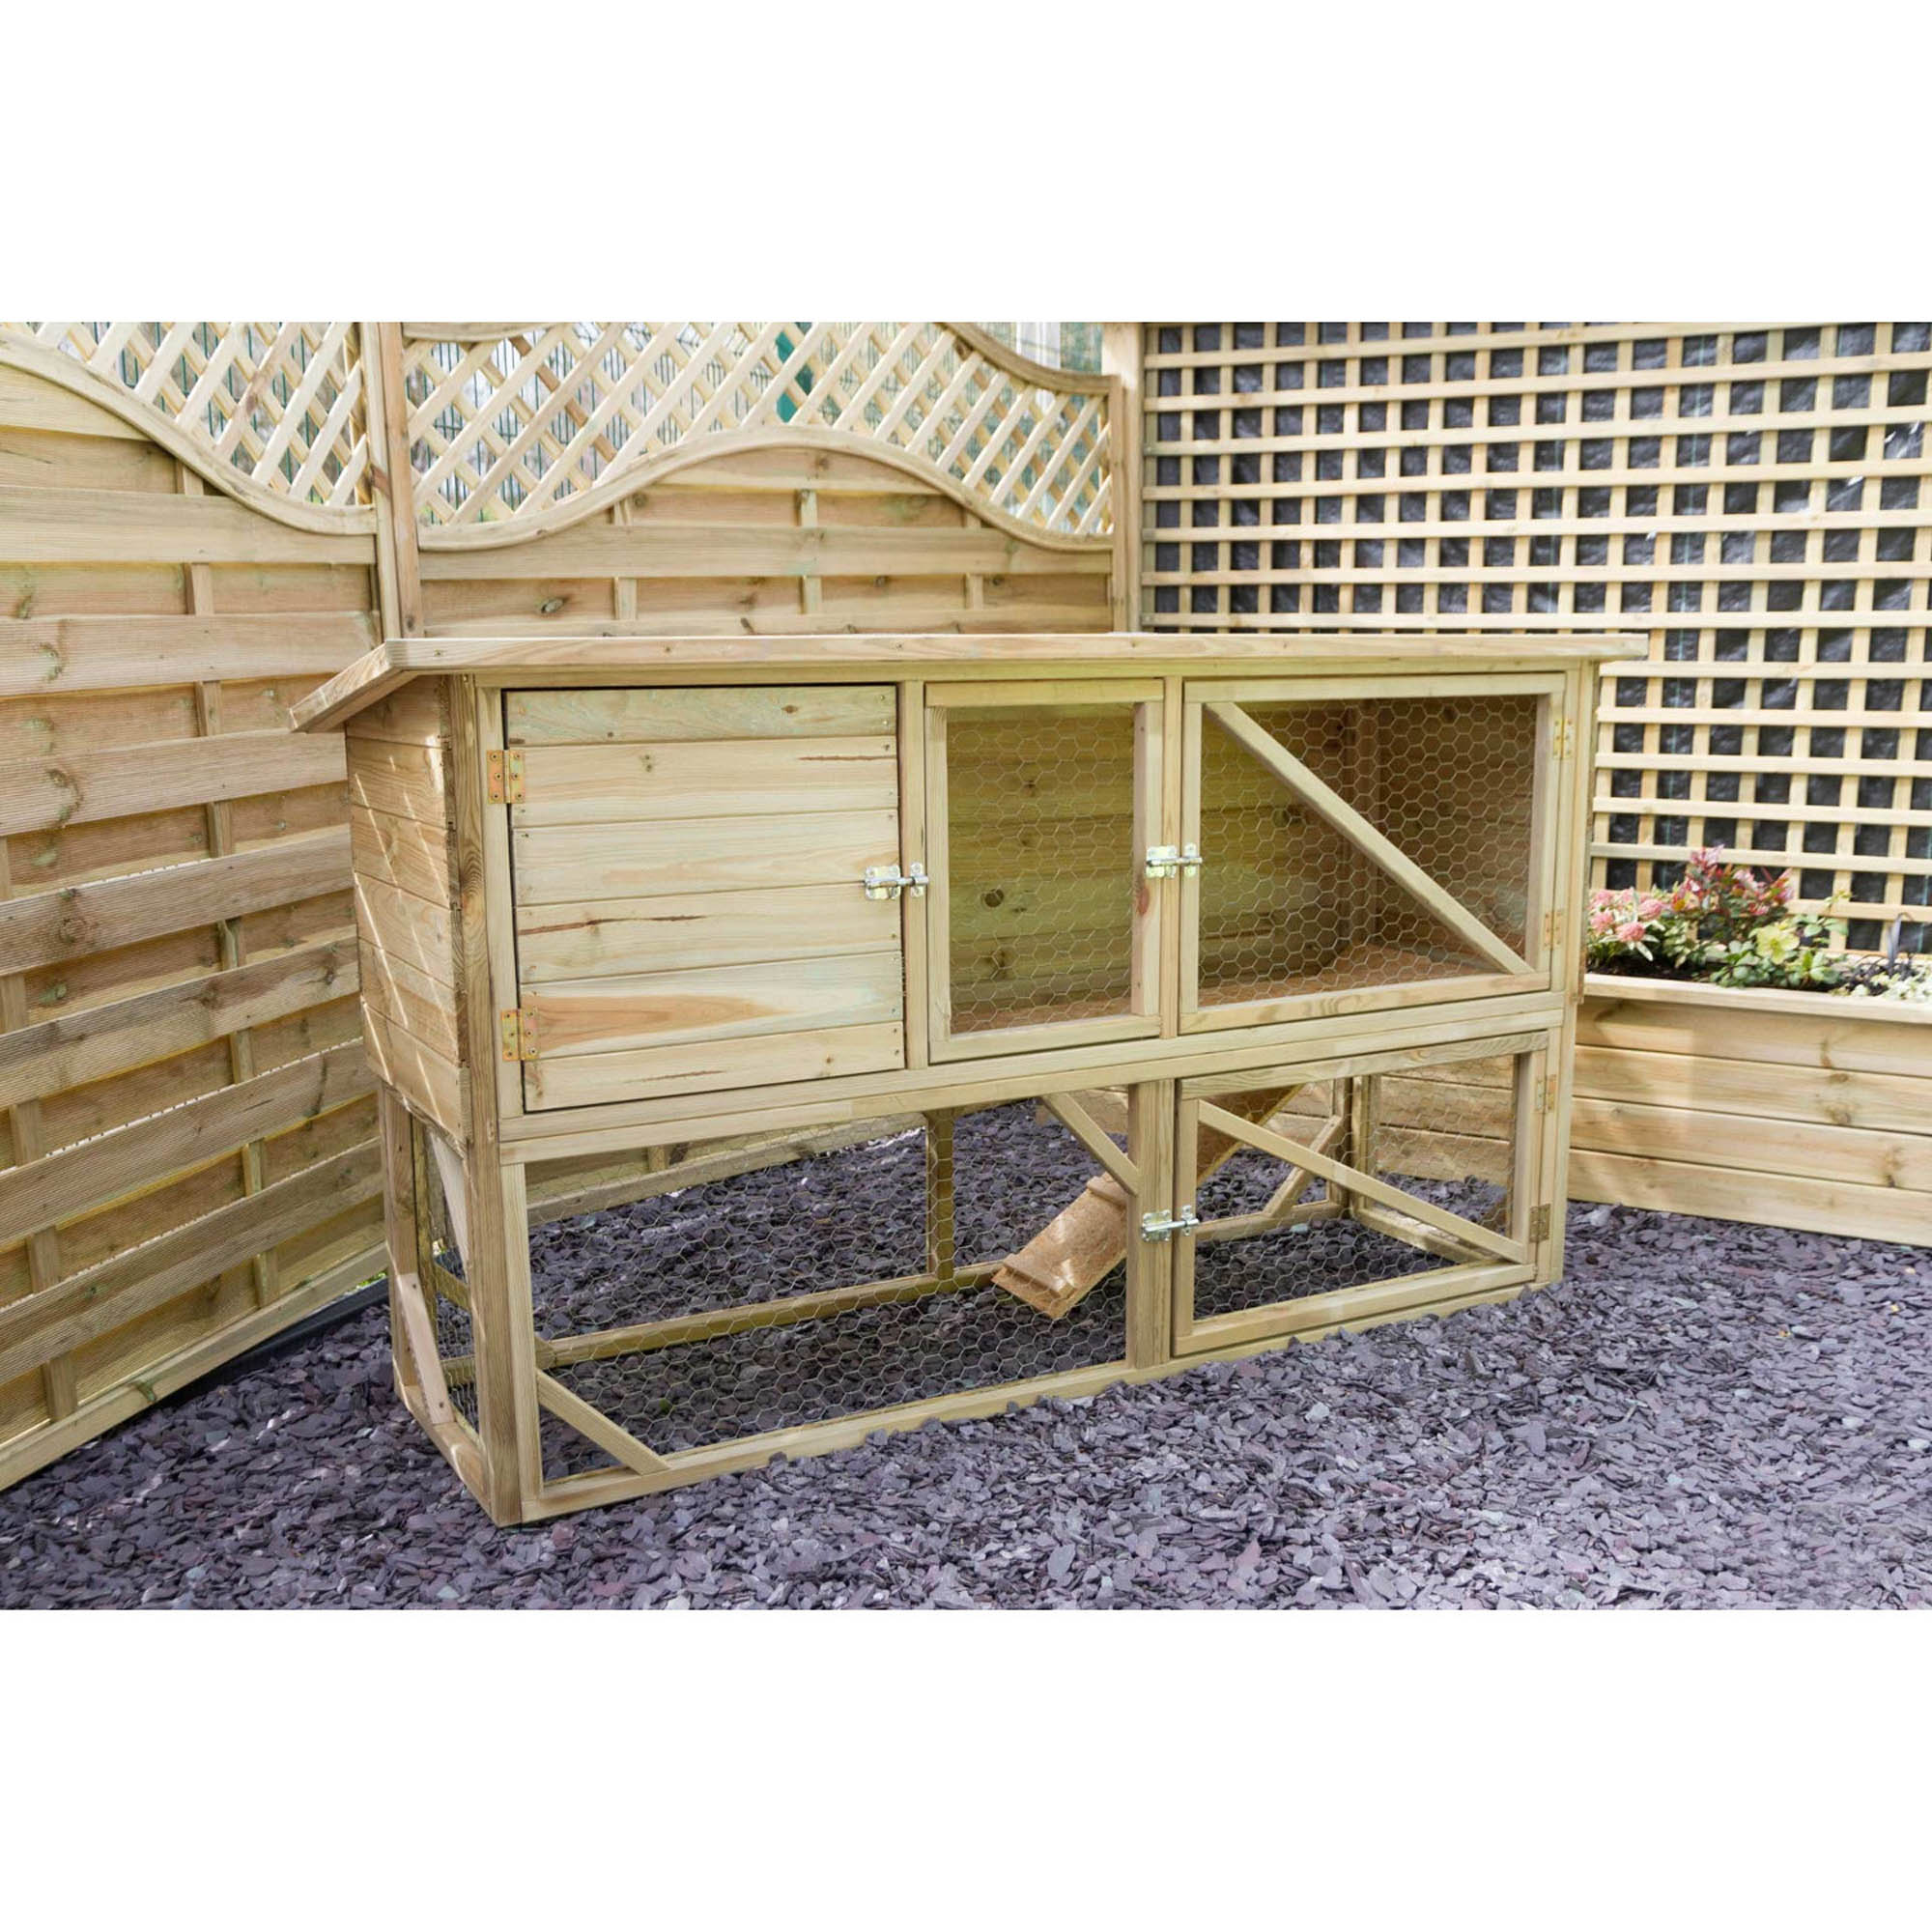 Rabbit and Guinea Pig Hutch and Run Sandstone (Brown)